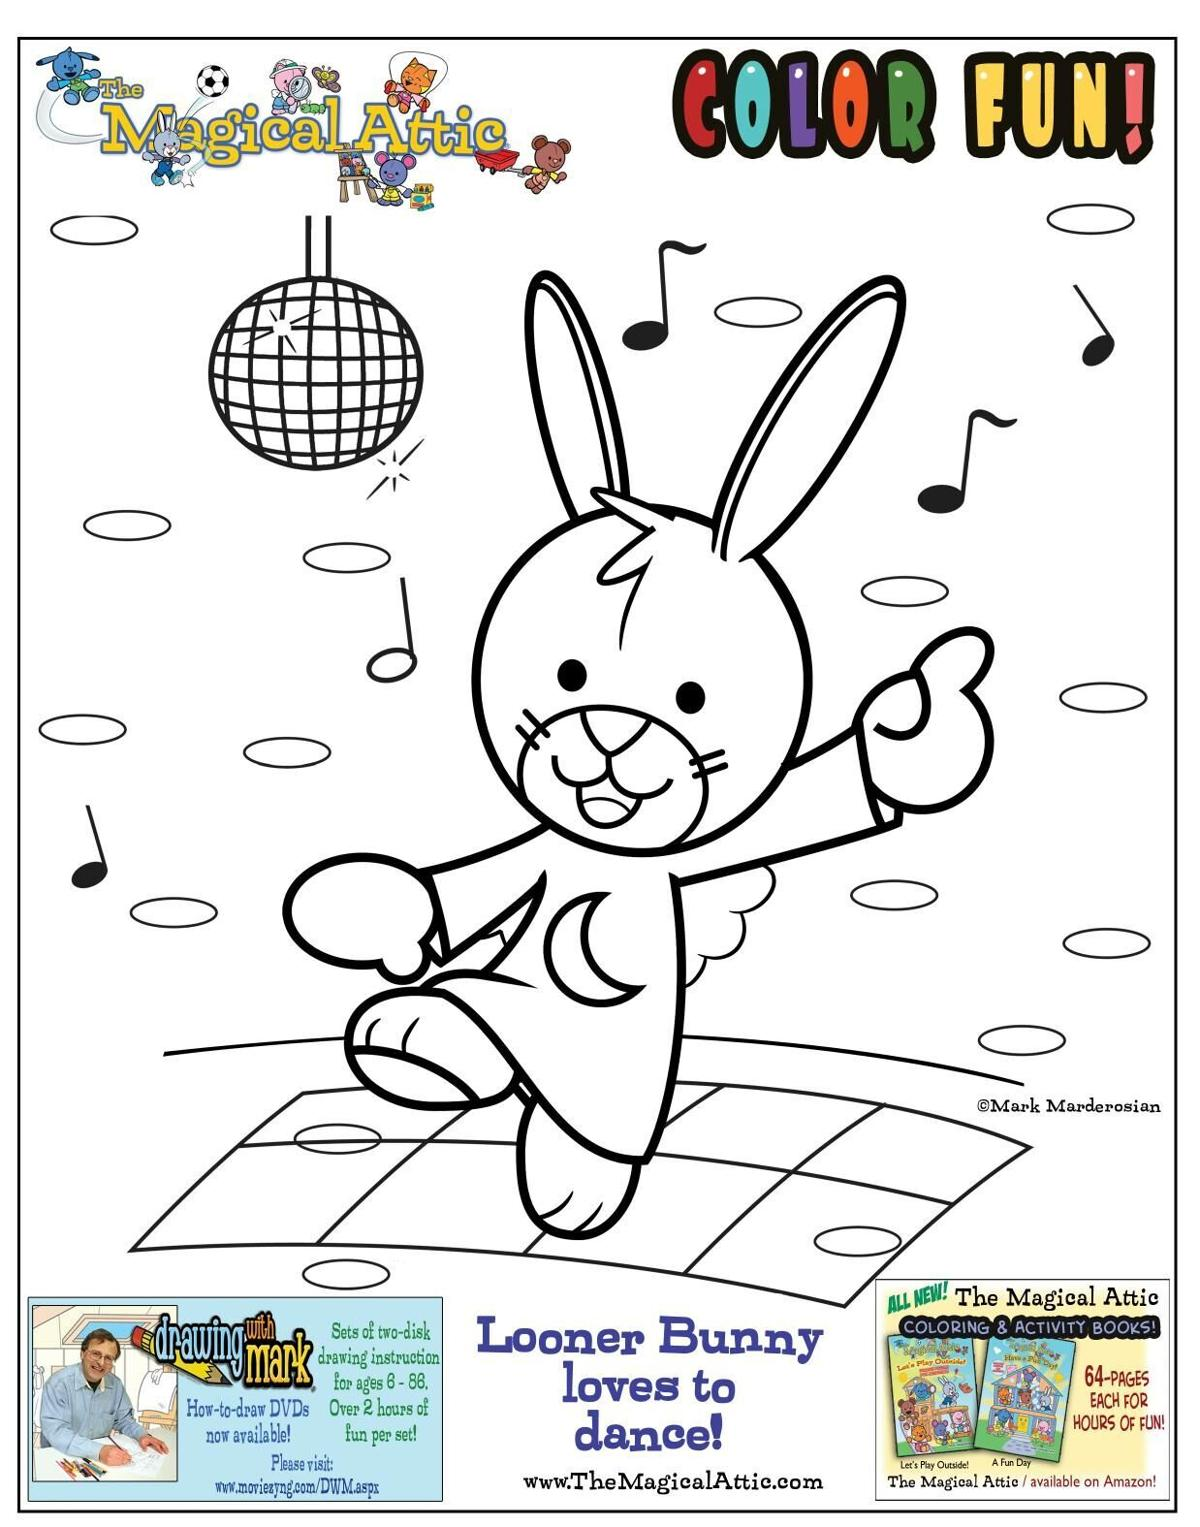 The Magical Attic with Looner Bunny